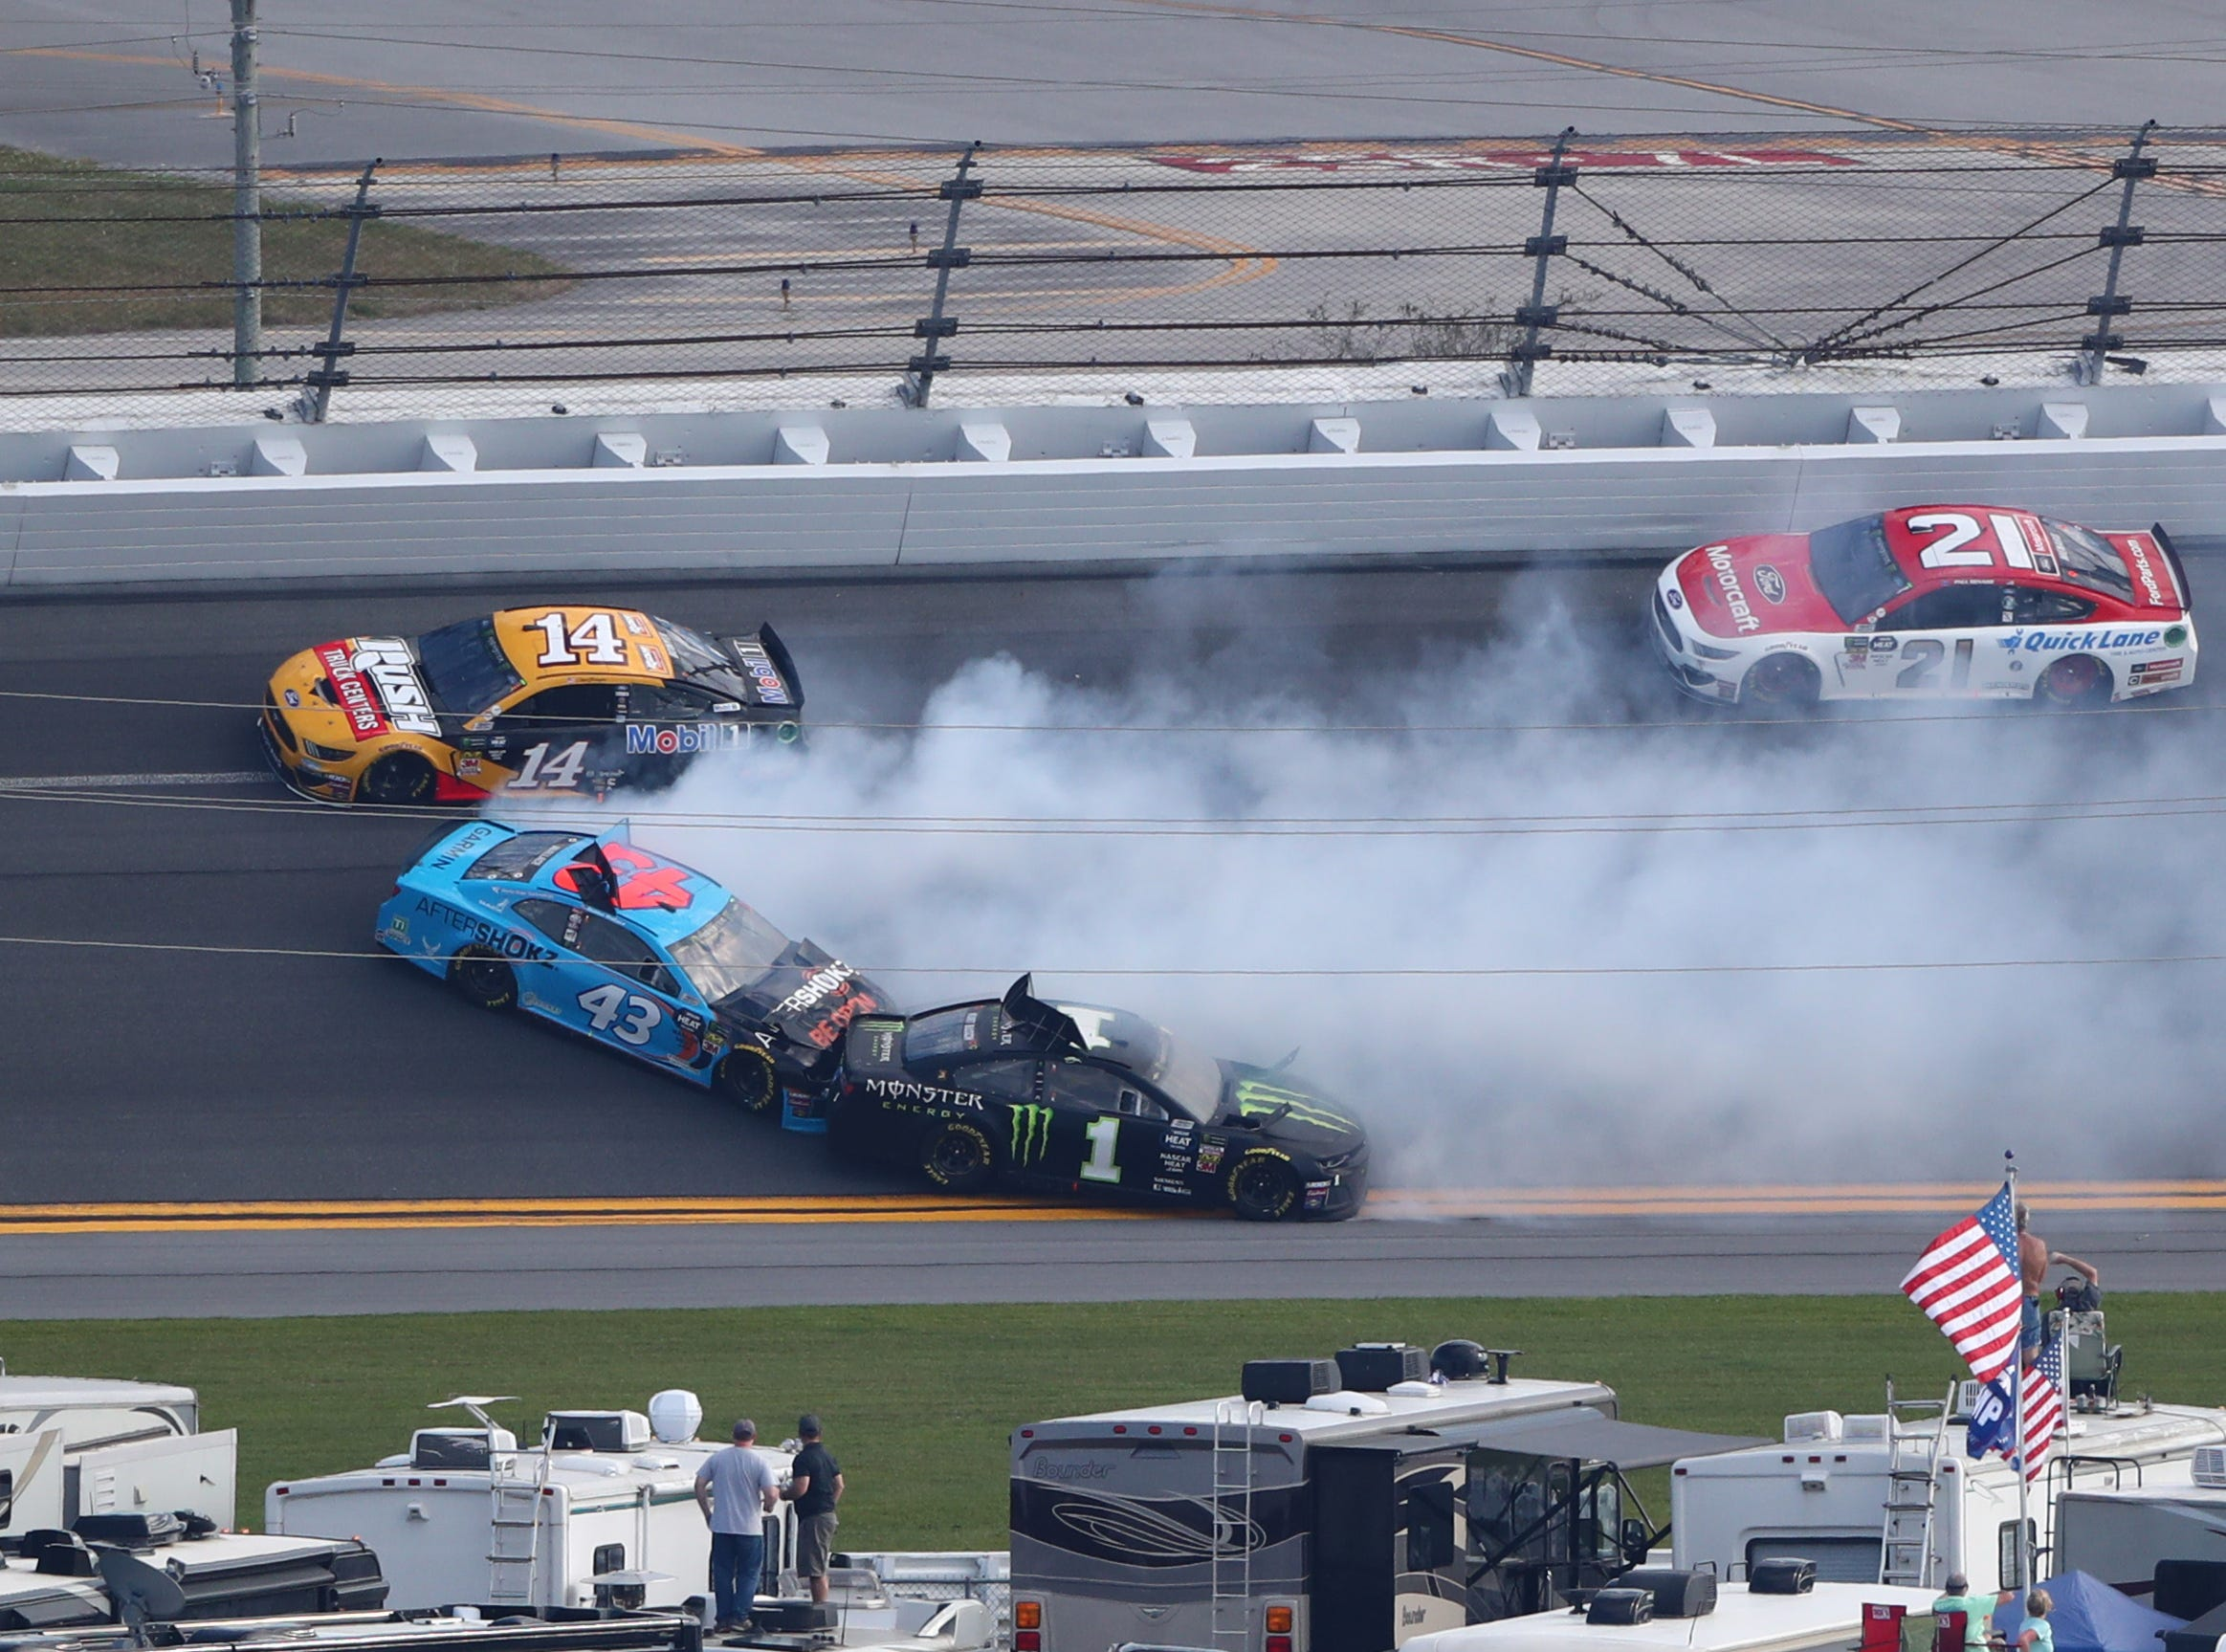 Clint Bowyer (14) and Paul Menard (21) go high as Kurt Busch (1) and Bubba Wallace (43) crash during the Daytona 500.